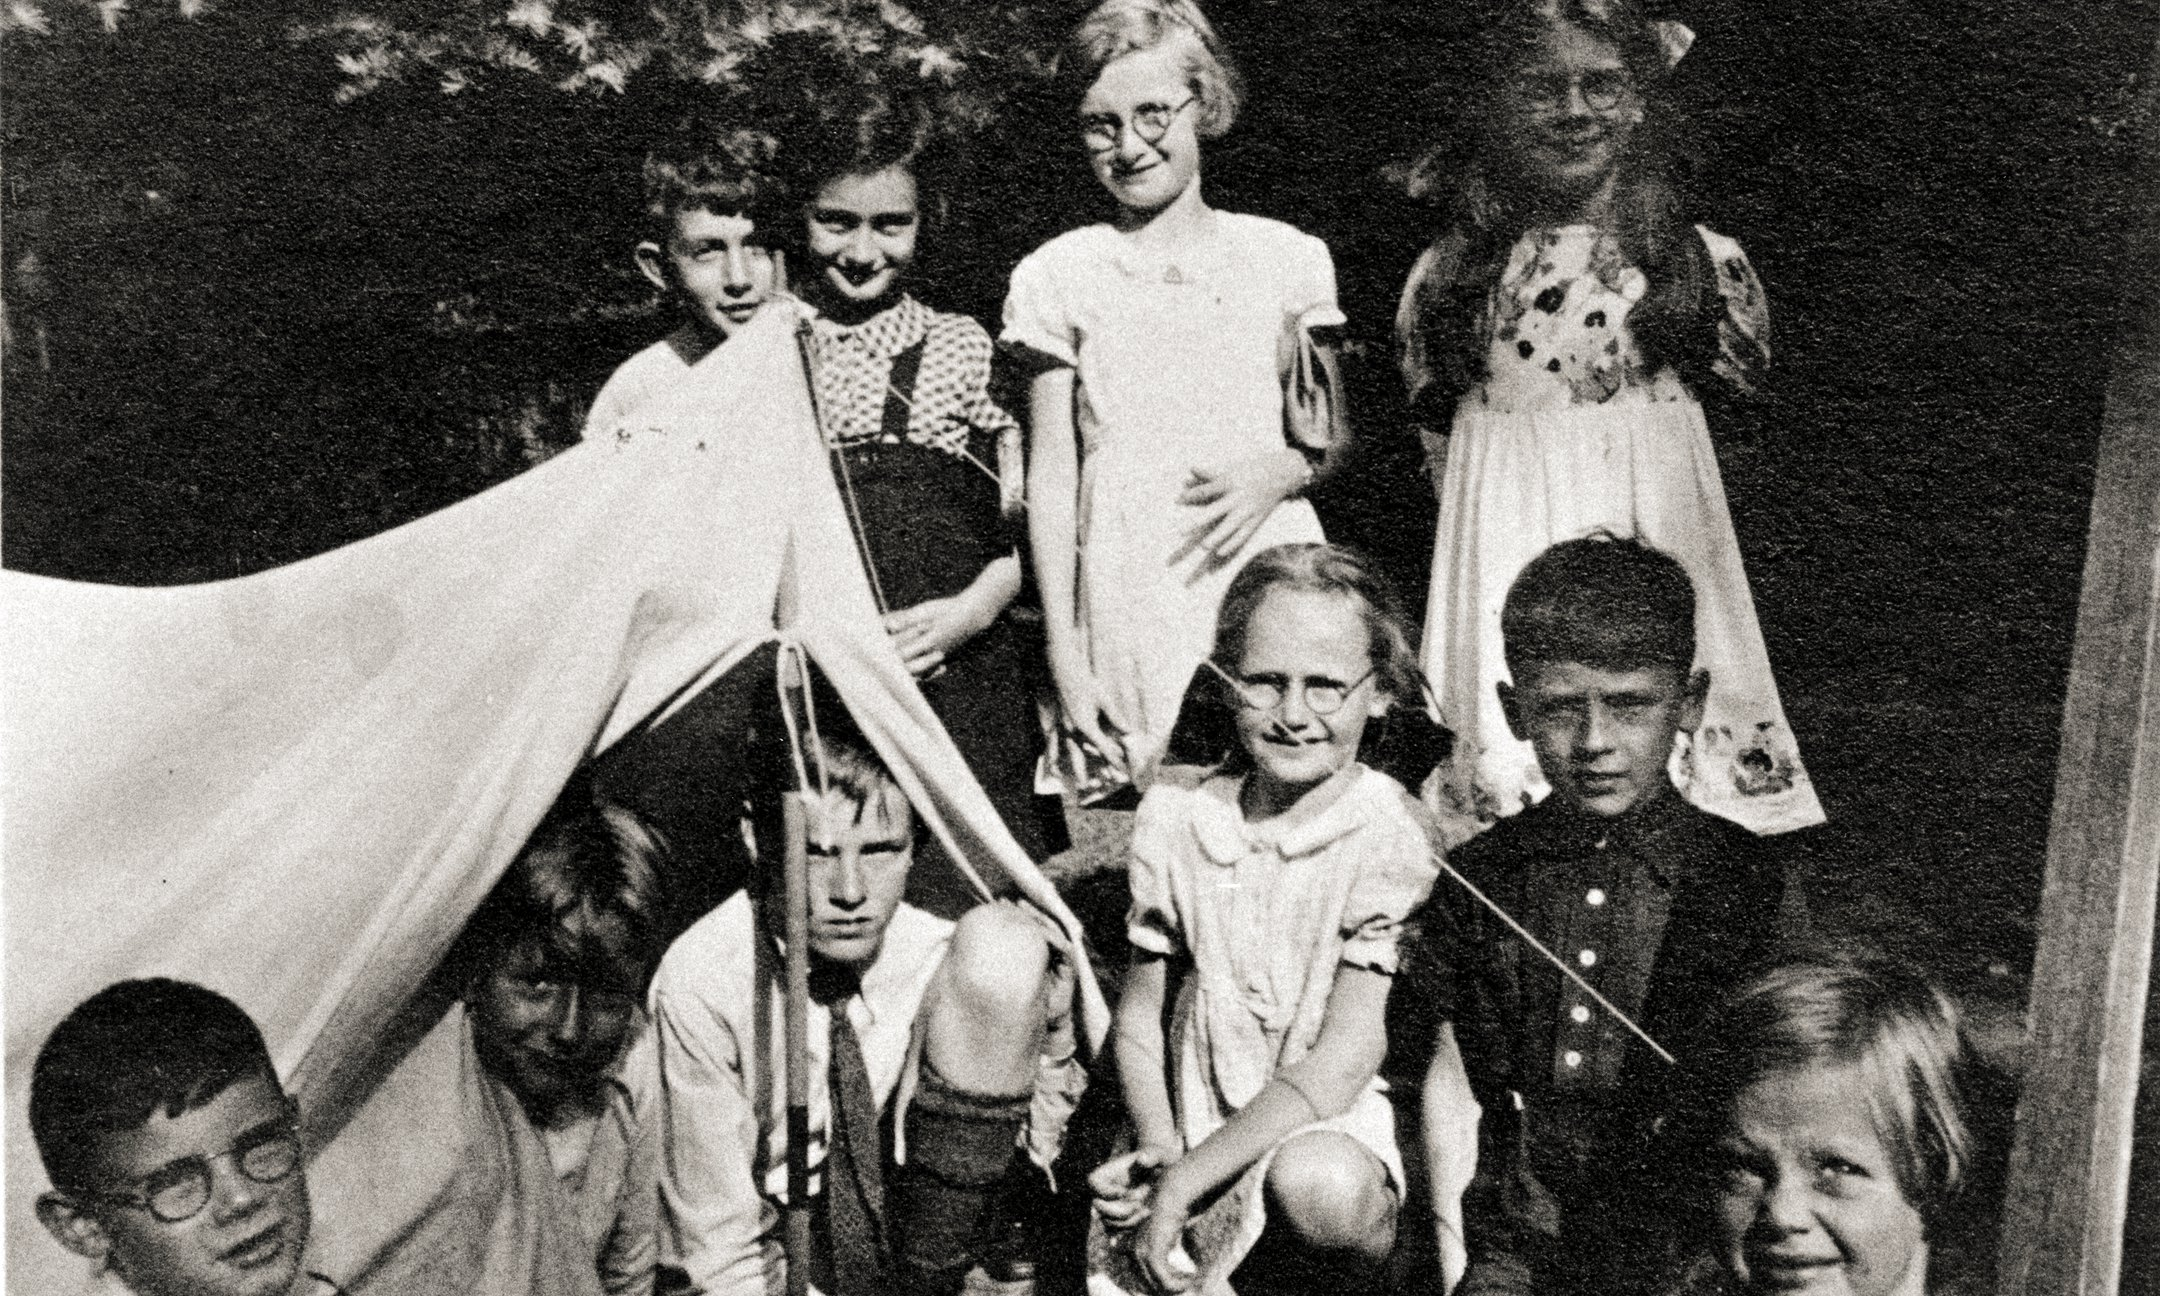 Anne Frank (back row, second from left) during a holiday in 'the children's house' in Laren, summer 1938.